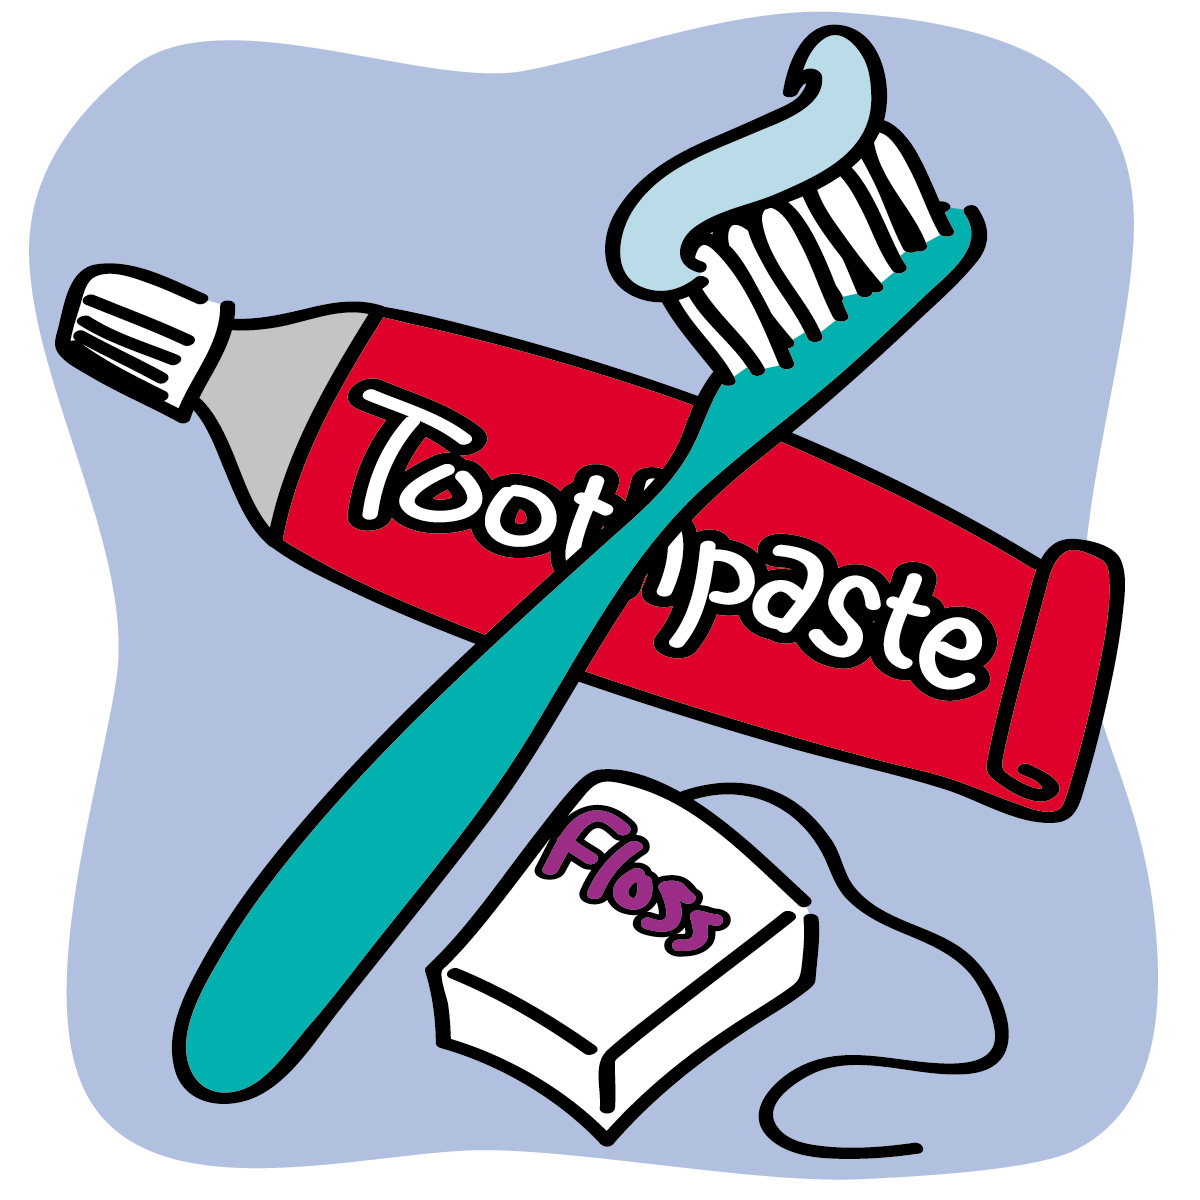 Dentist clipart dental hygienist. Free pictures of toothpaste